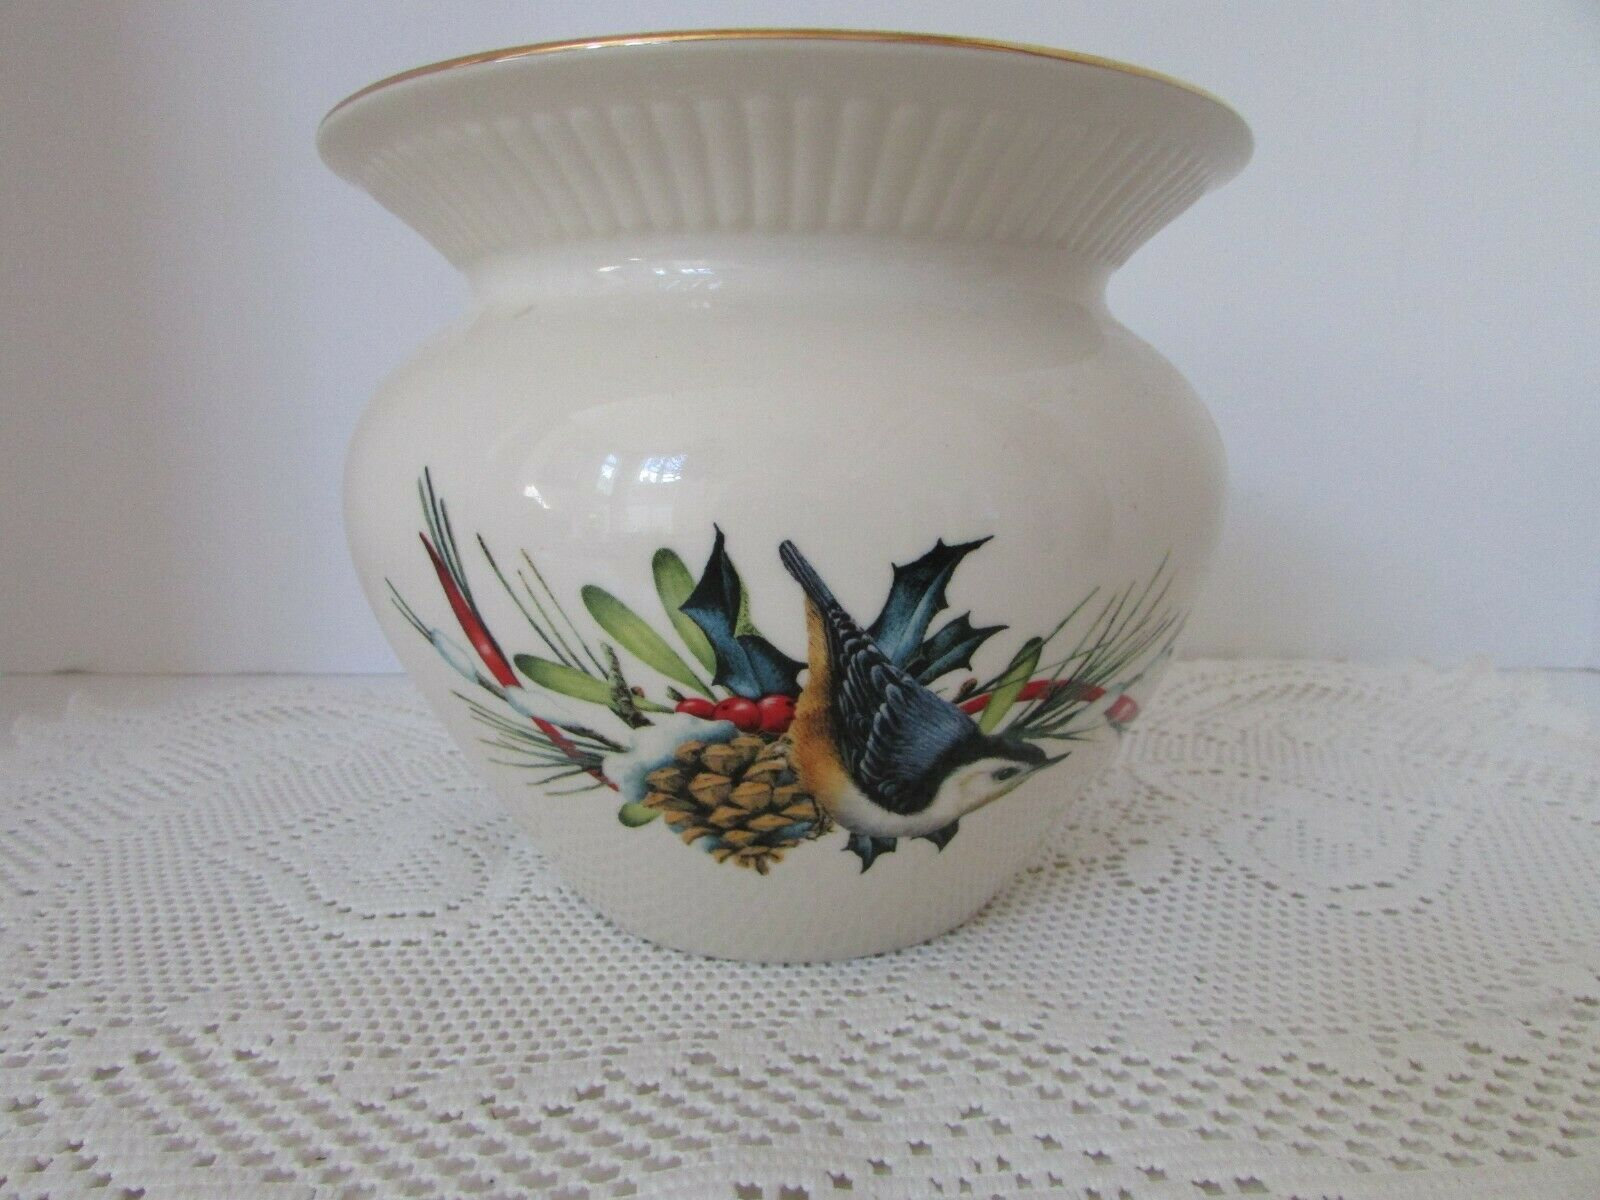 LENOX LARGE CACHE POT VASE PLANTER WINTER GREETINGS CATHERINE MCCLUNG W/TAGS